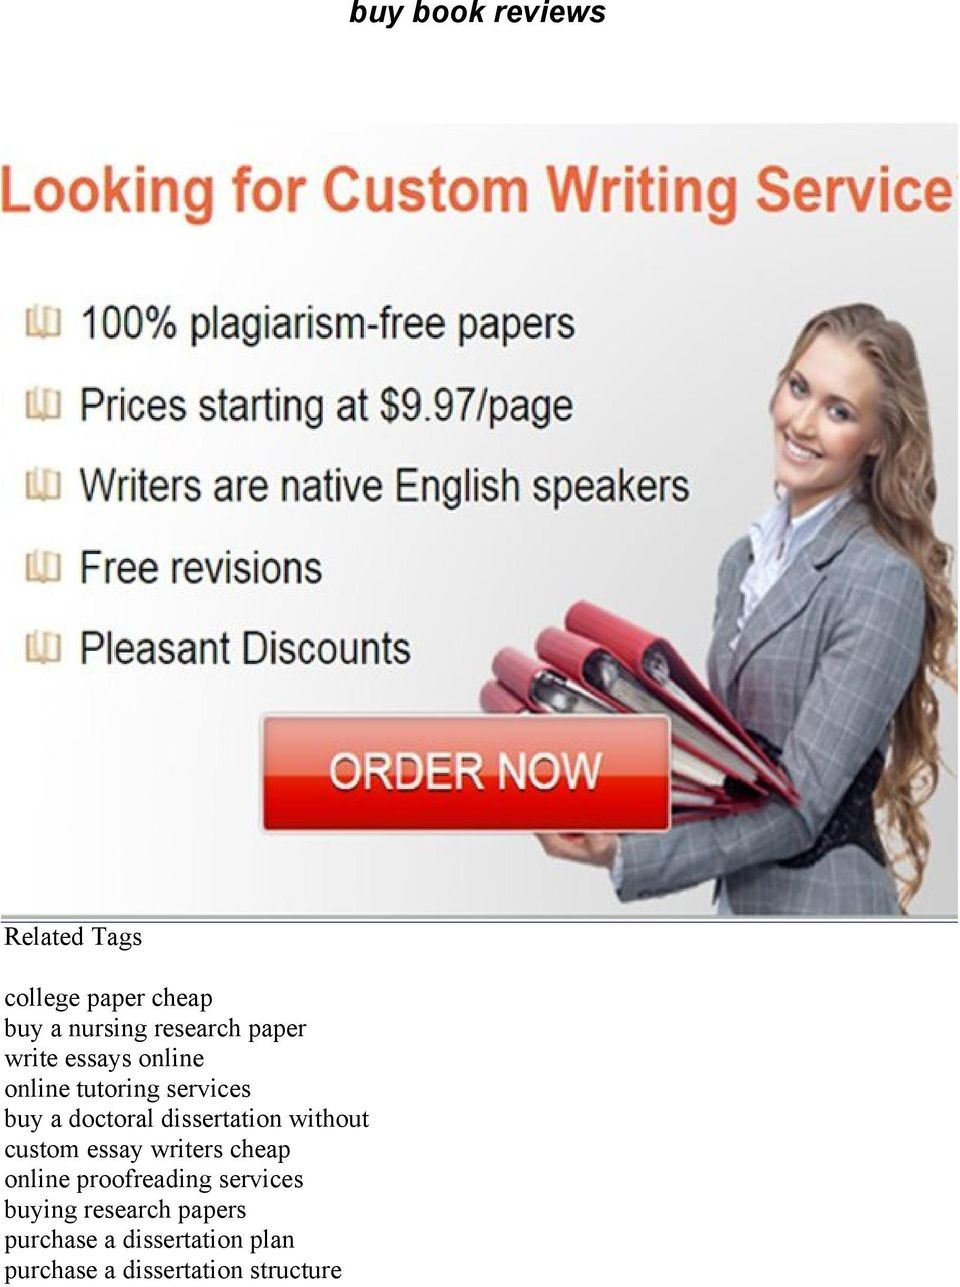 dissertation without custom essay writers cheap online proofreading